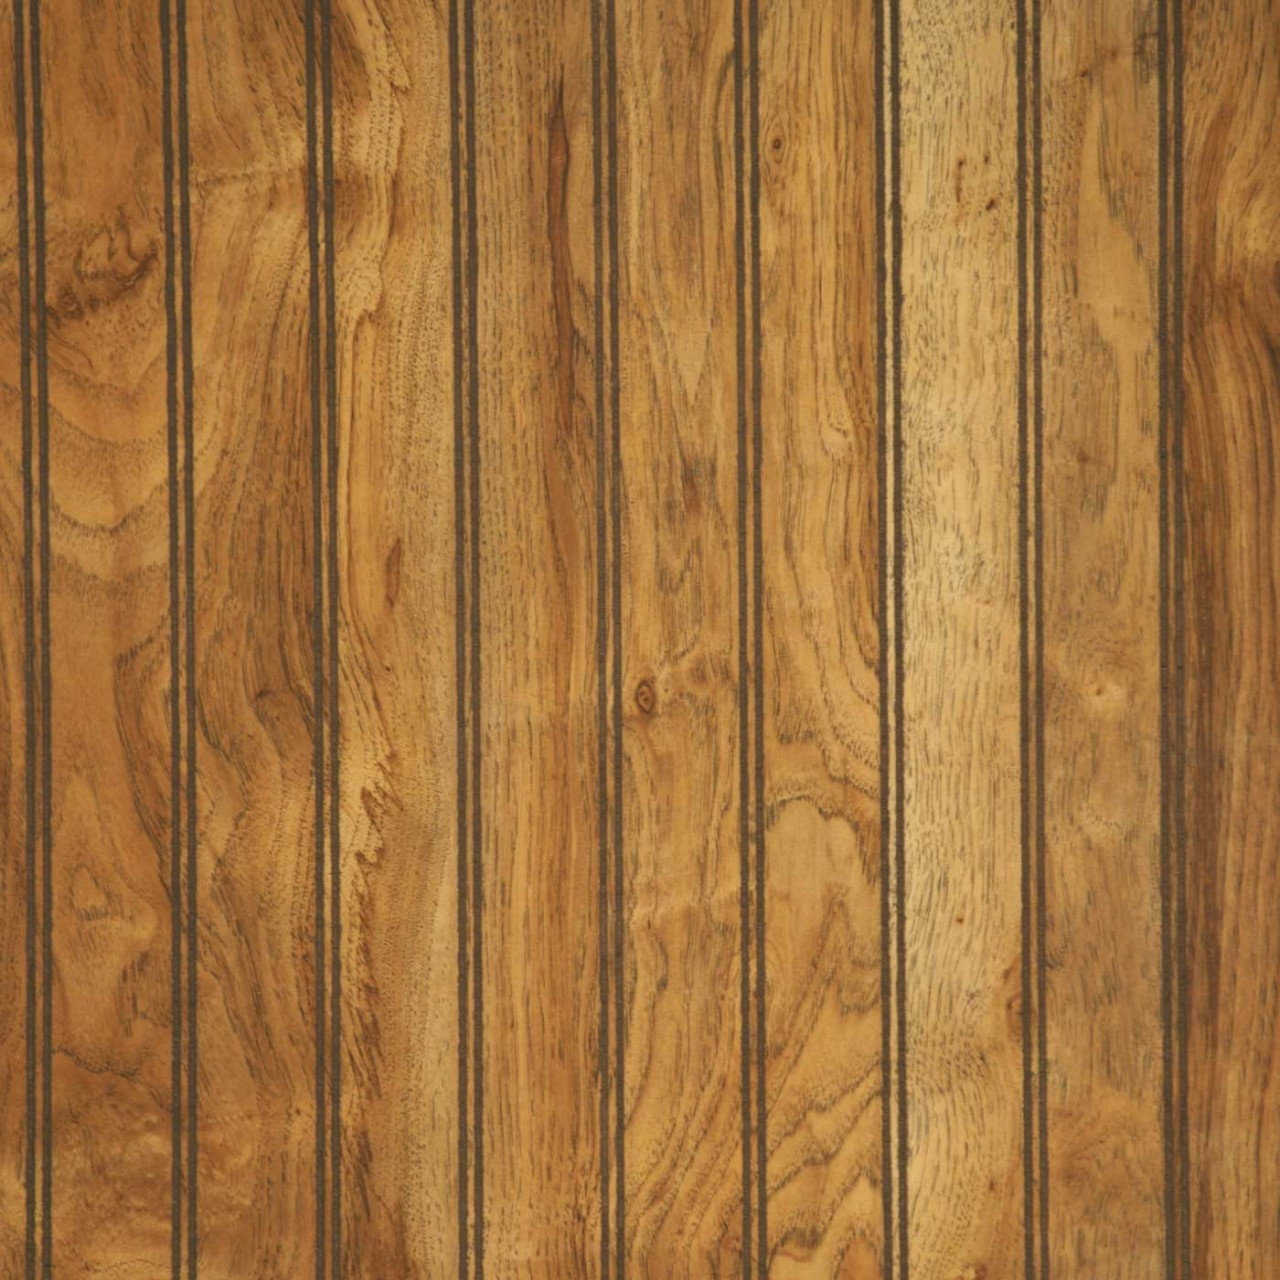 Marvelous photograph of Paneling Wall Paneling Wood Paneling For Walls Decor with #9E742D color and 1280x1280 pixels